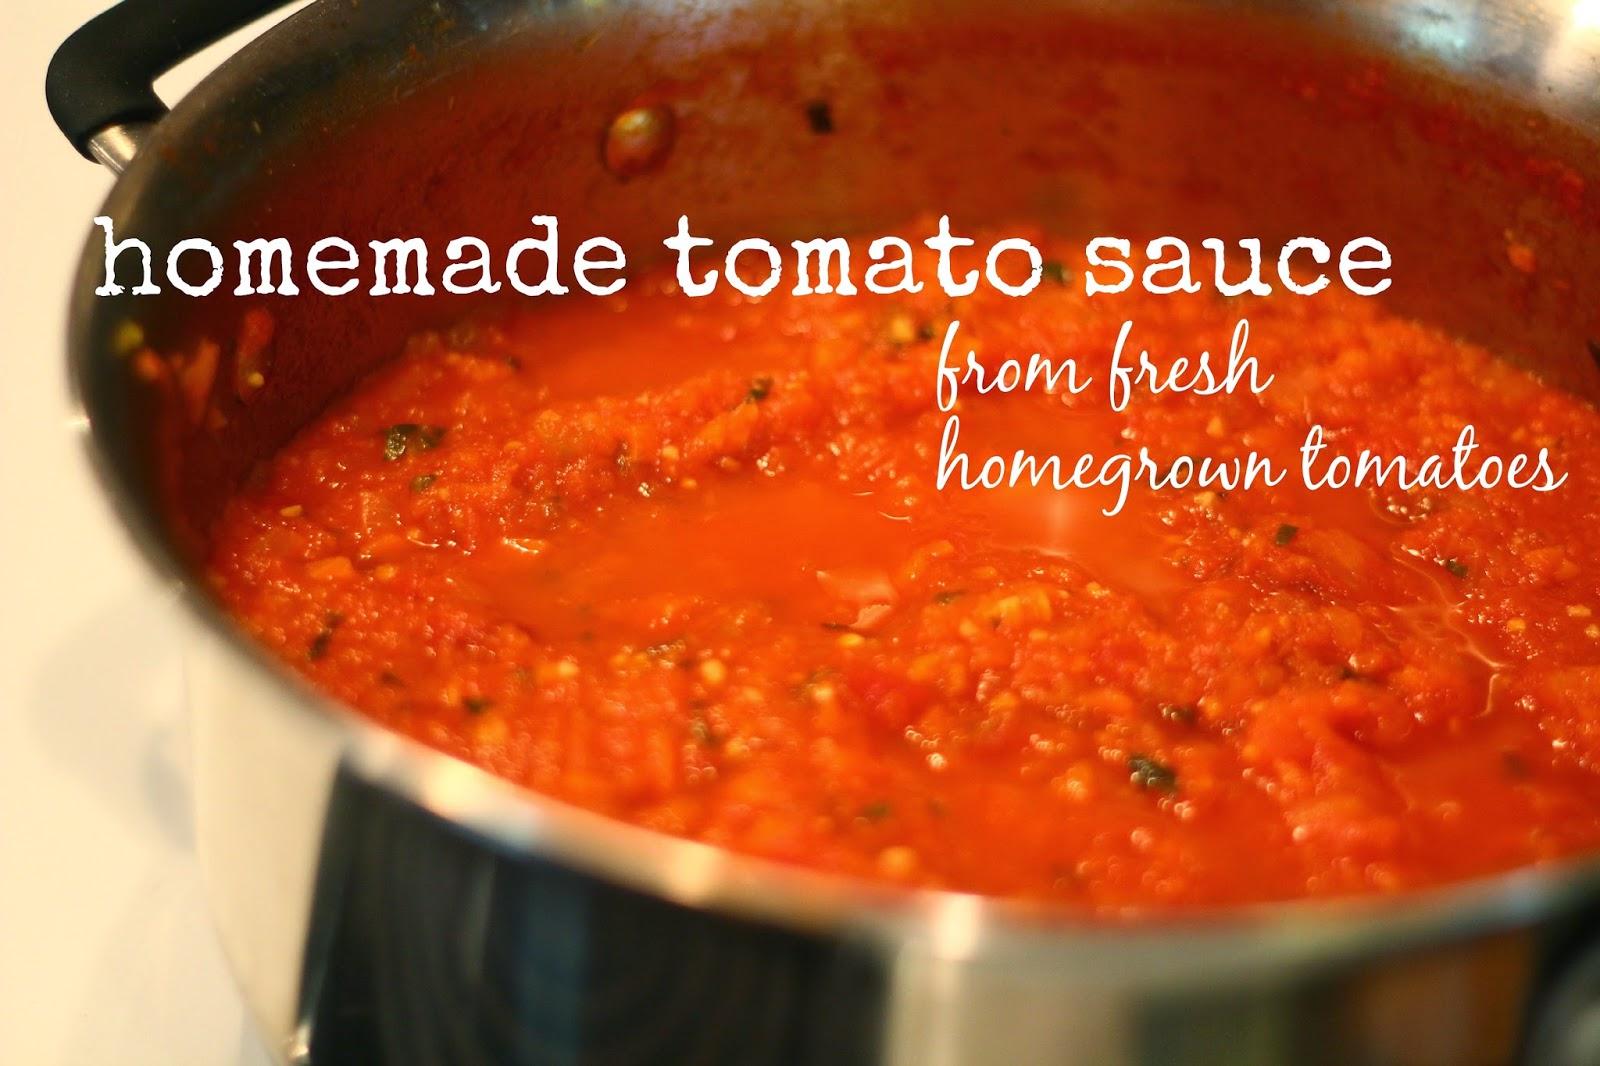 homemade tomato sauce, fresh from homegrown tomatoes, recipe, diy, can, fresh, tomato, ingredients,